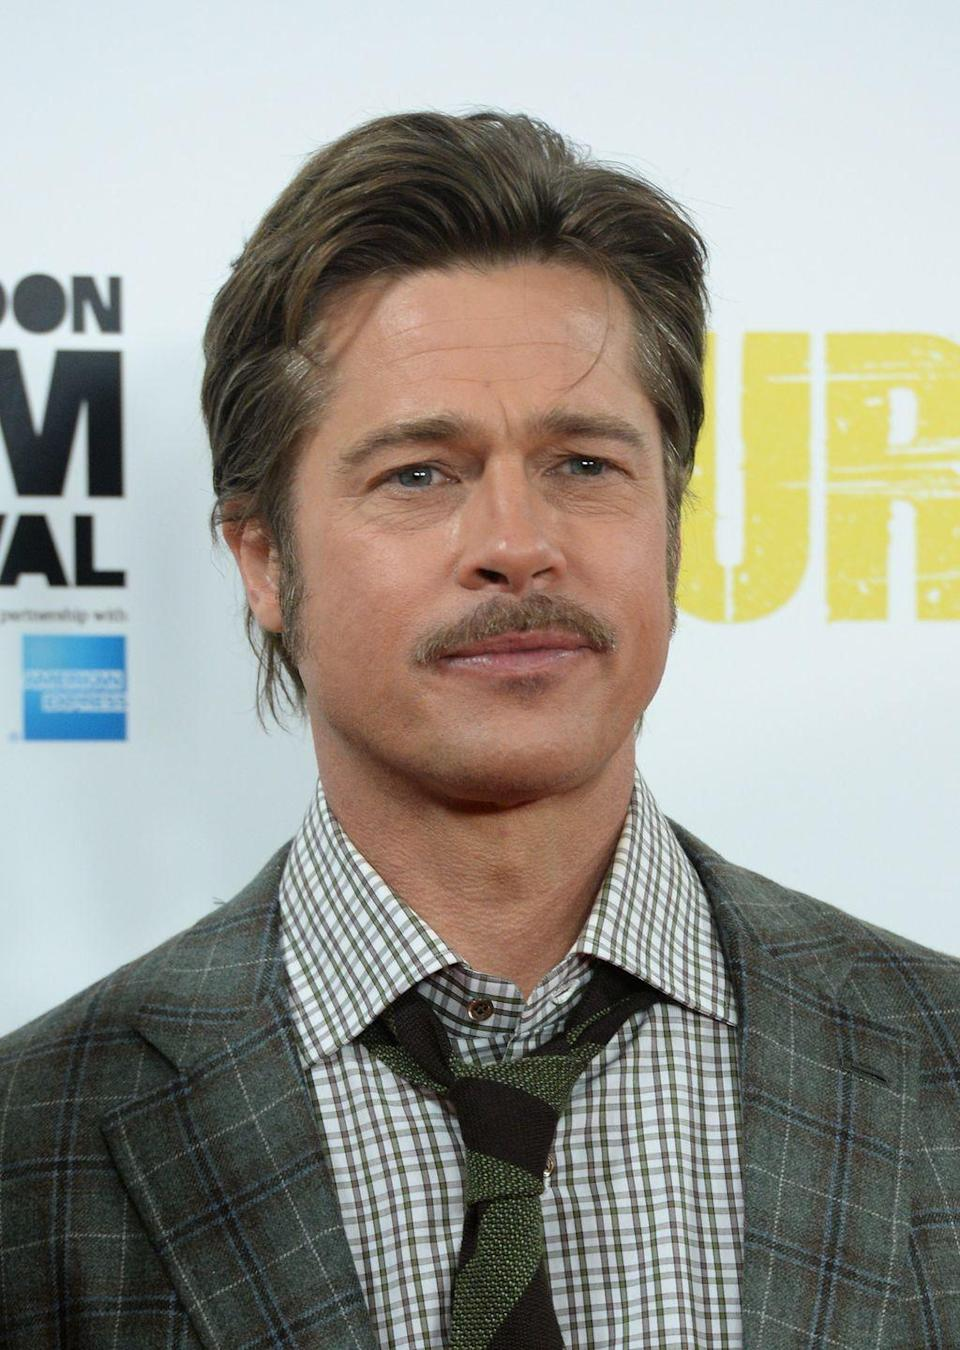 <p>The picture of graceful aging, Brad Pitt has transitioned through various stages of mustache maturity. No matter how he wears it, his facial hair seems to add an air of sophistication and wisdom to his handsome face. </p>